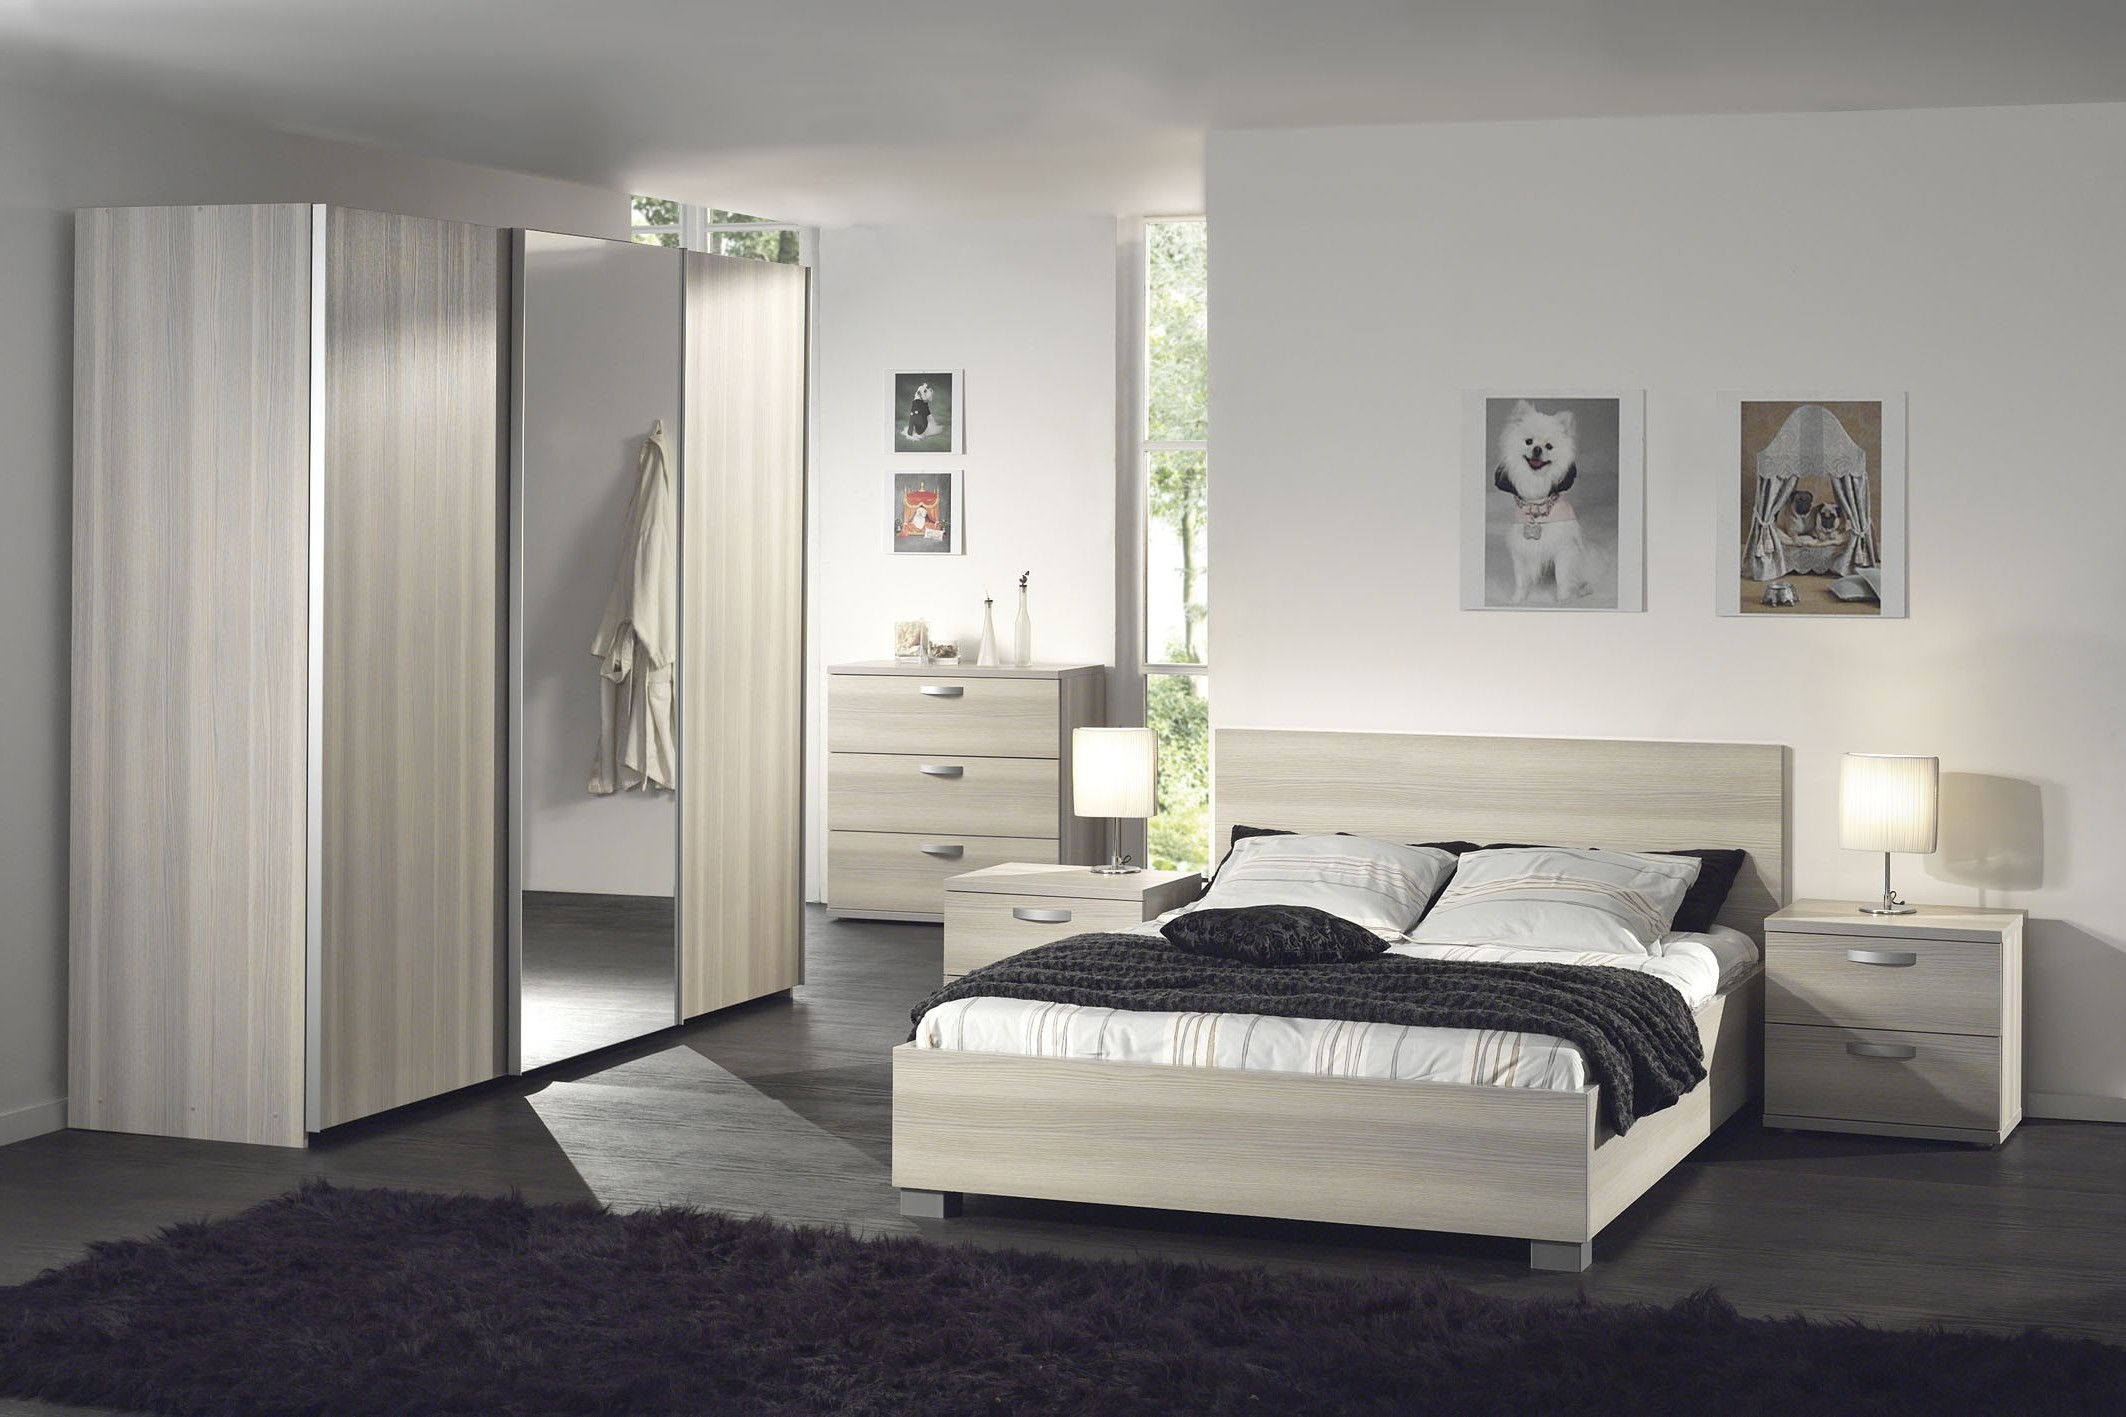 chambre a coucher complete adulte ikea chambre id es de d coration de maison 56lgx4od30. Black Bedroom Furniture Sets. Home Design Ideas